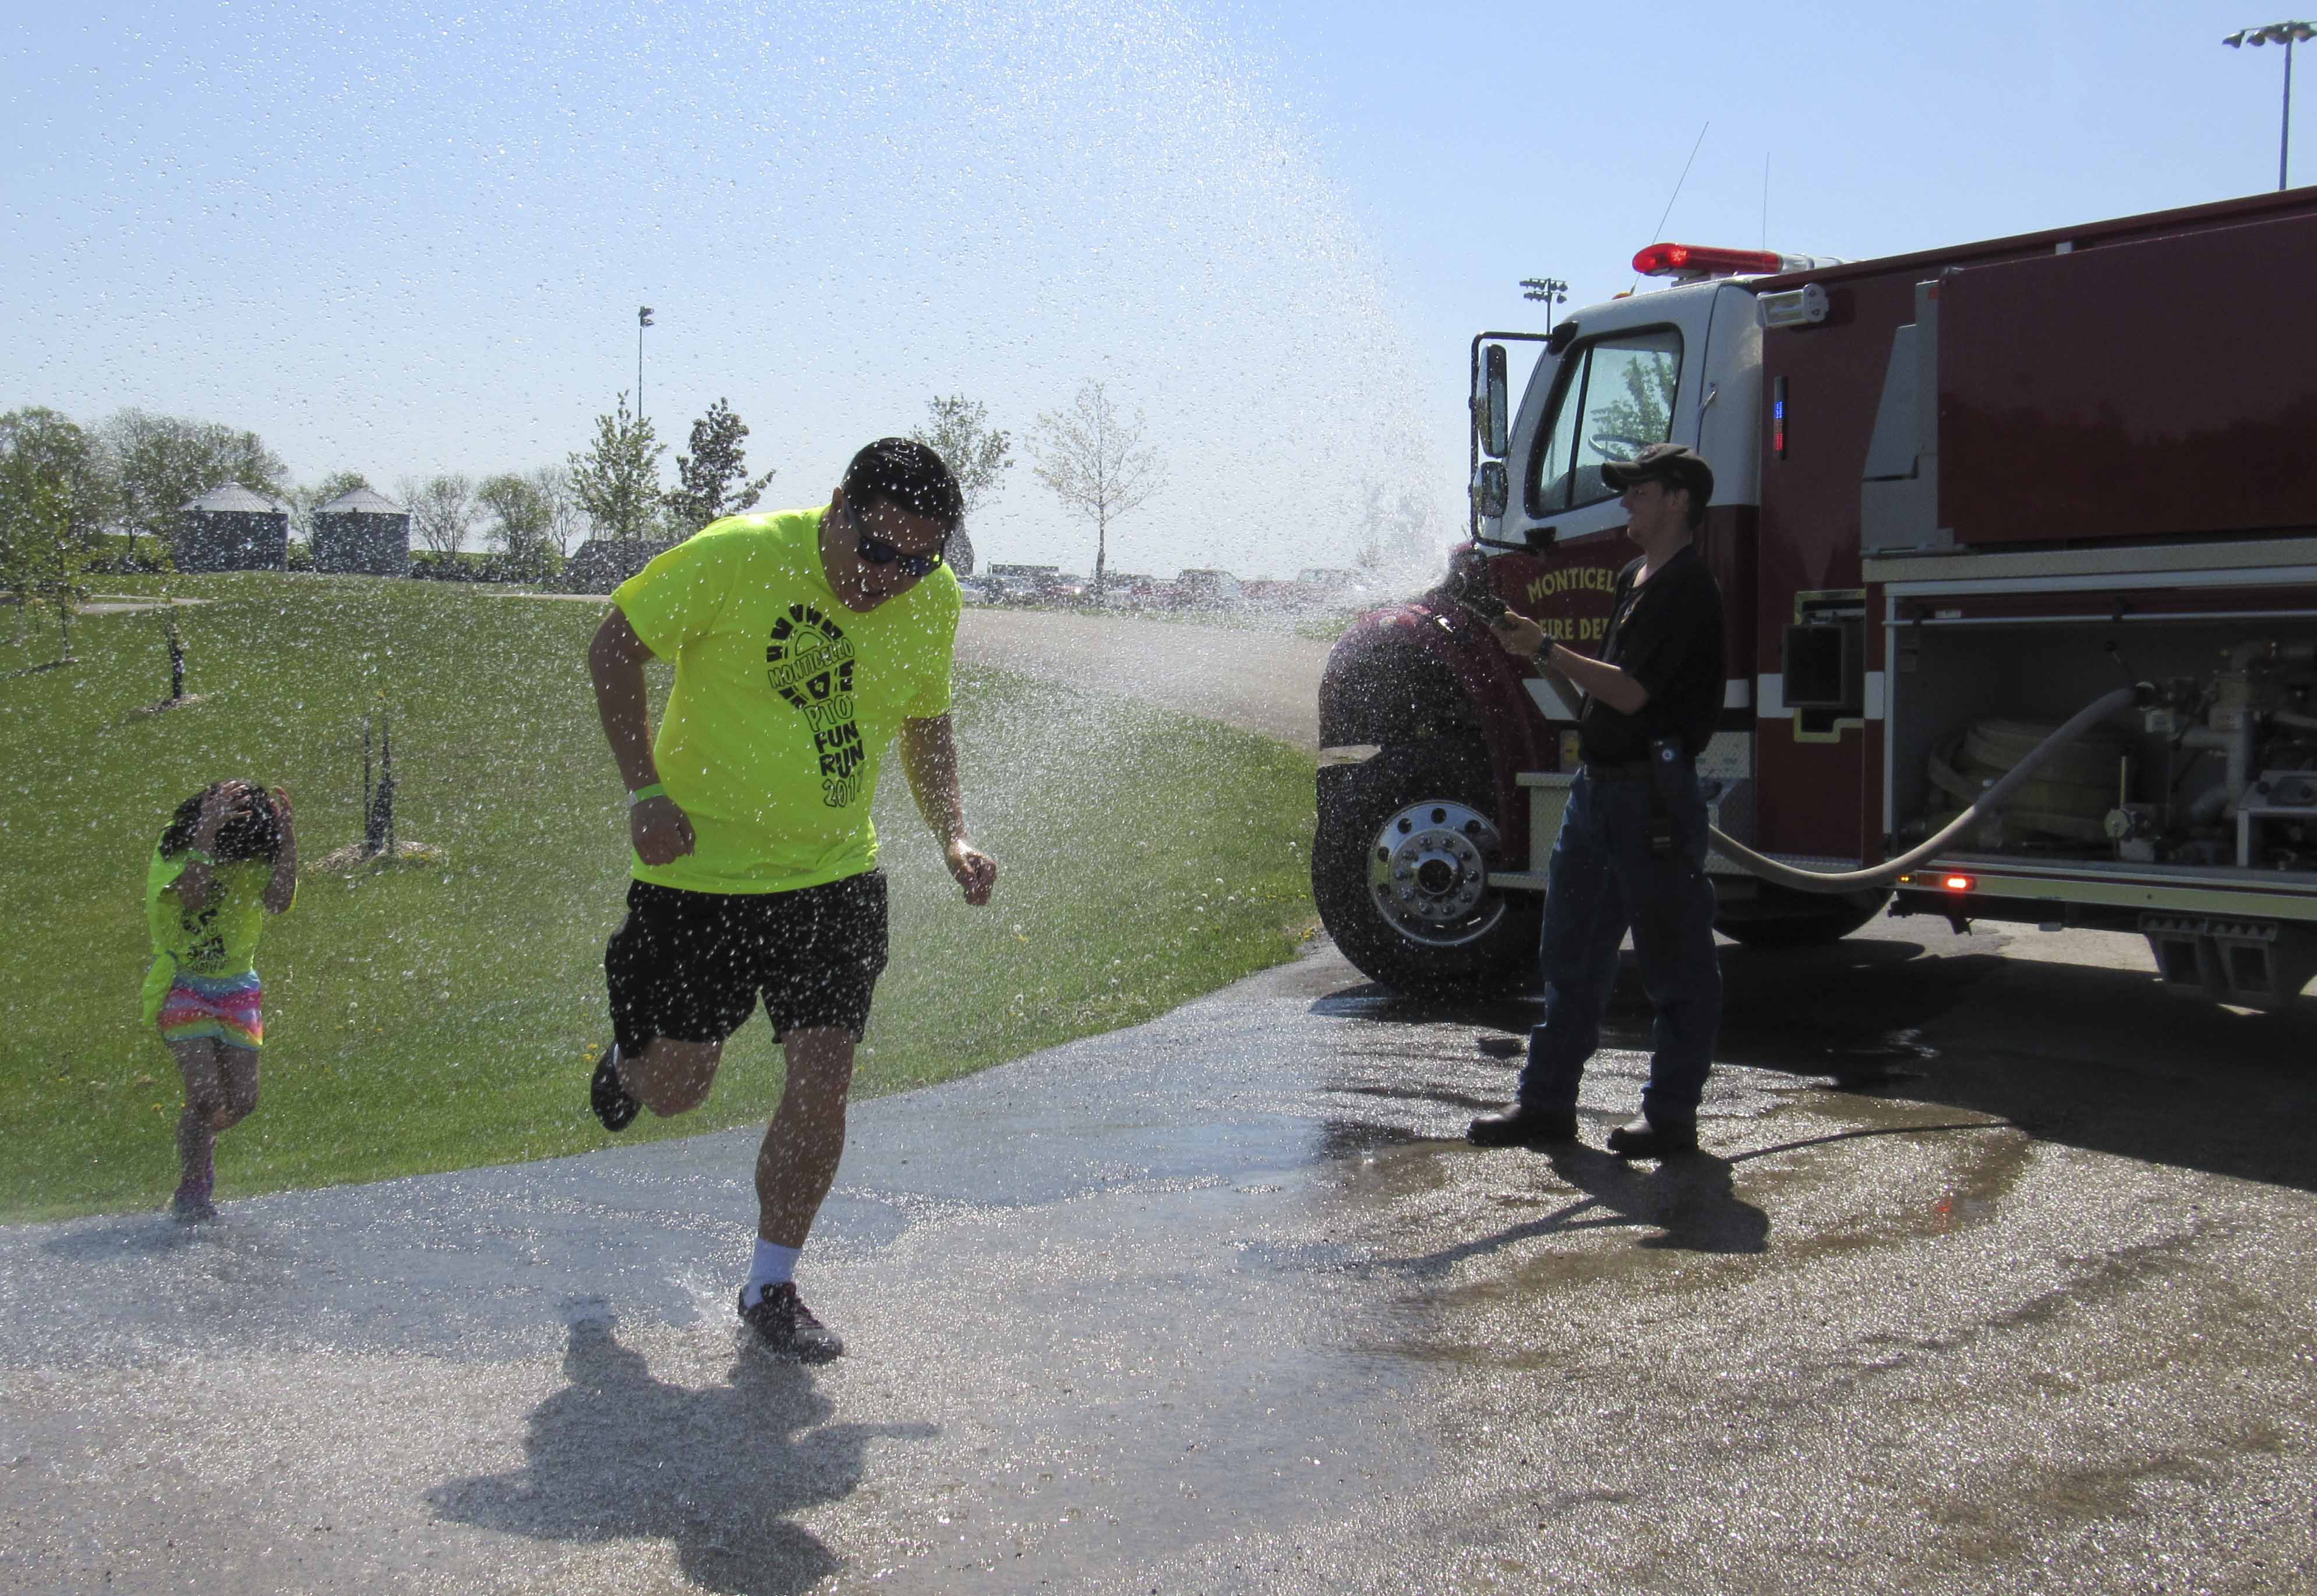 Father and daughter Dave and Kira Lee run through the water station at the PTO Fun Run. The water hose was provided courtesy of the Monticello Fire Department, run by Billy Norton and Tommy Norton.